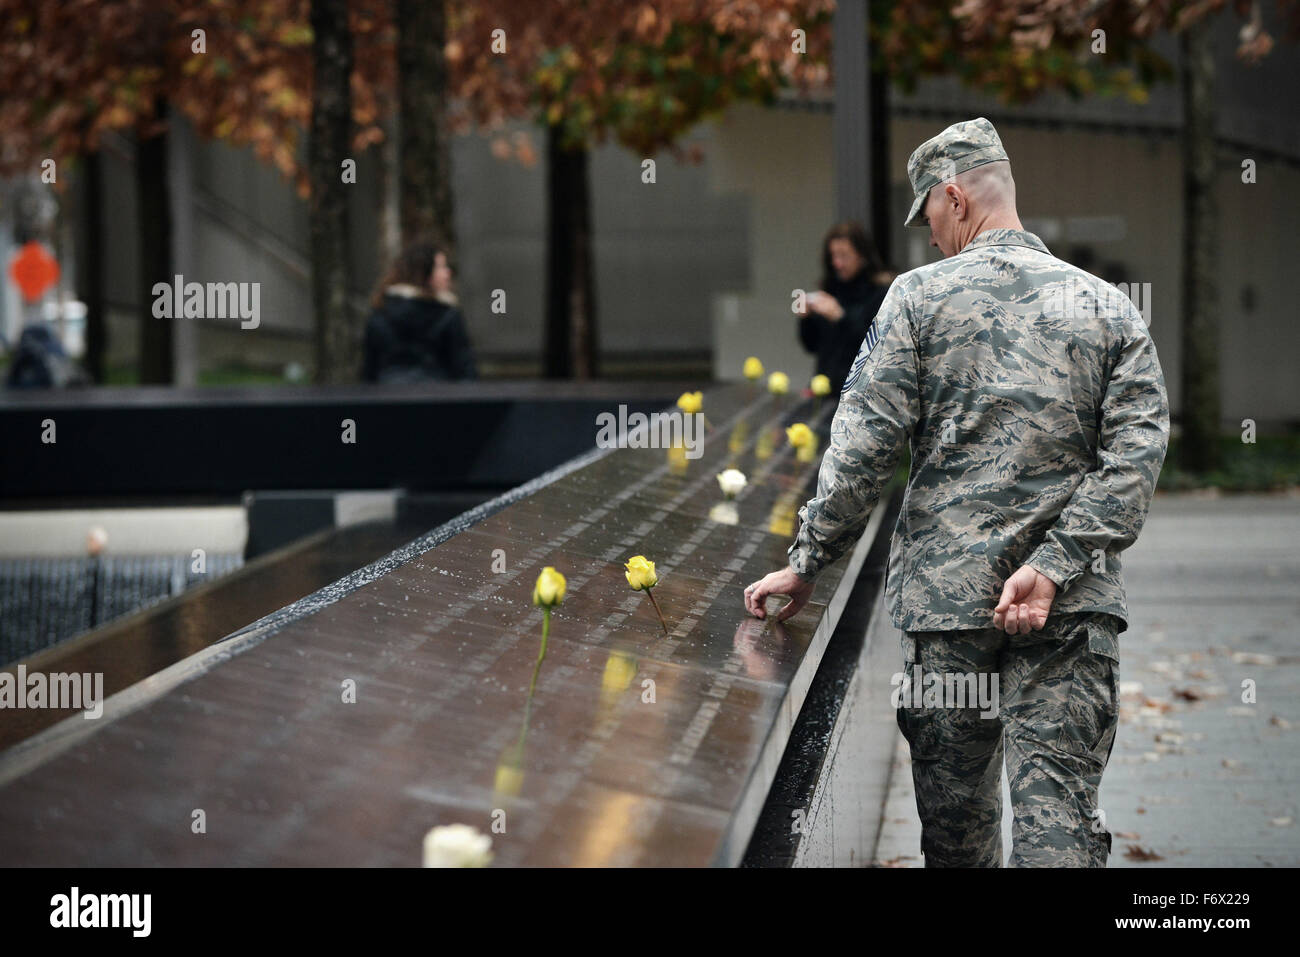 Members of the U.S. military Enlisted Field Advisory Council visit the Ground Zero Memorial in honor of Veterans Stock Photo